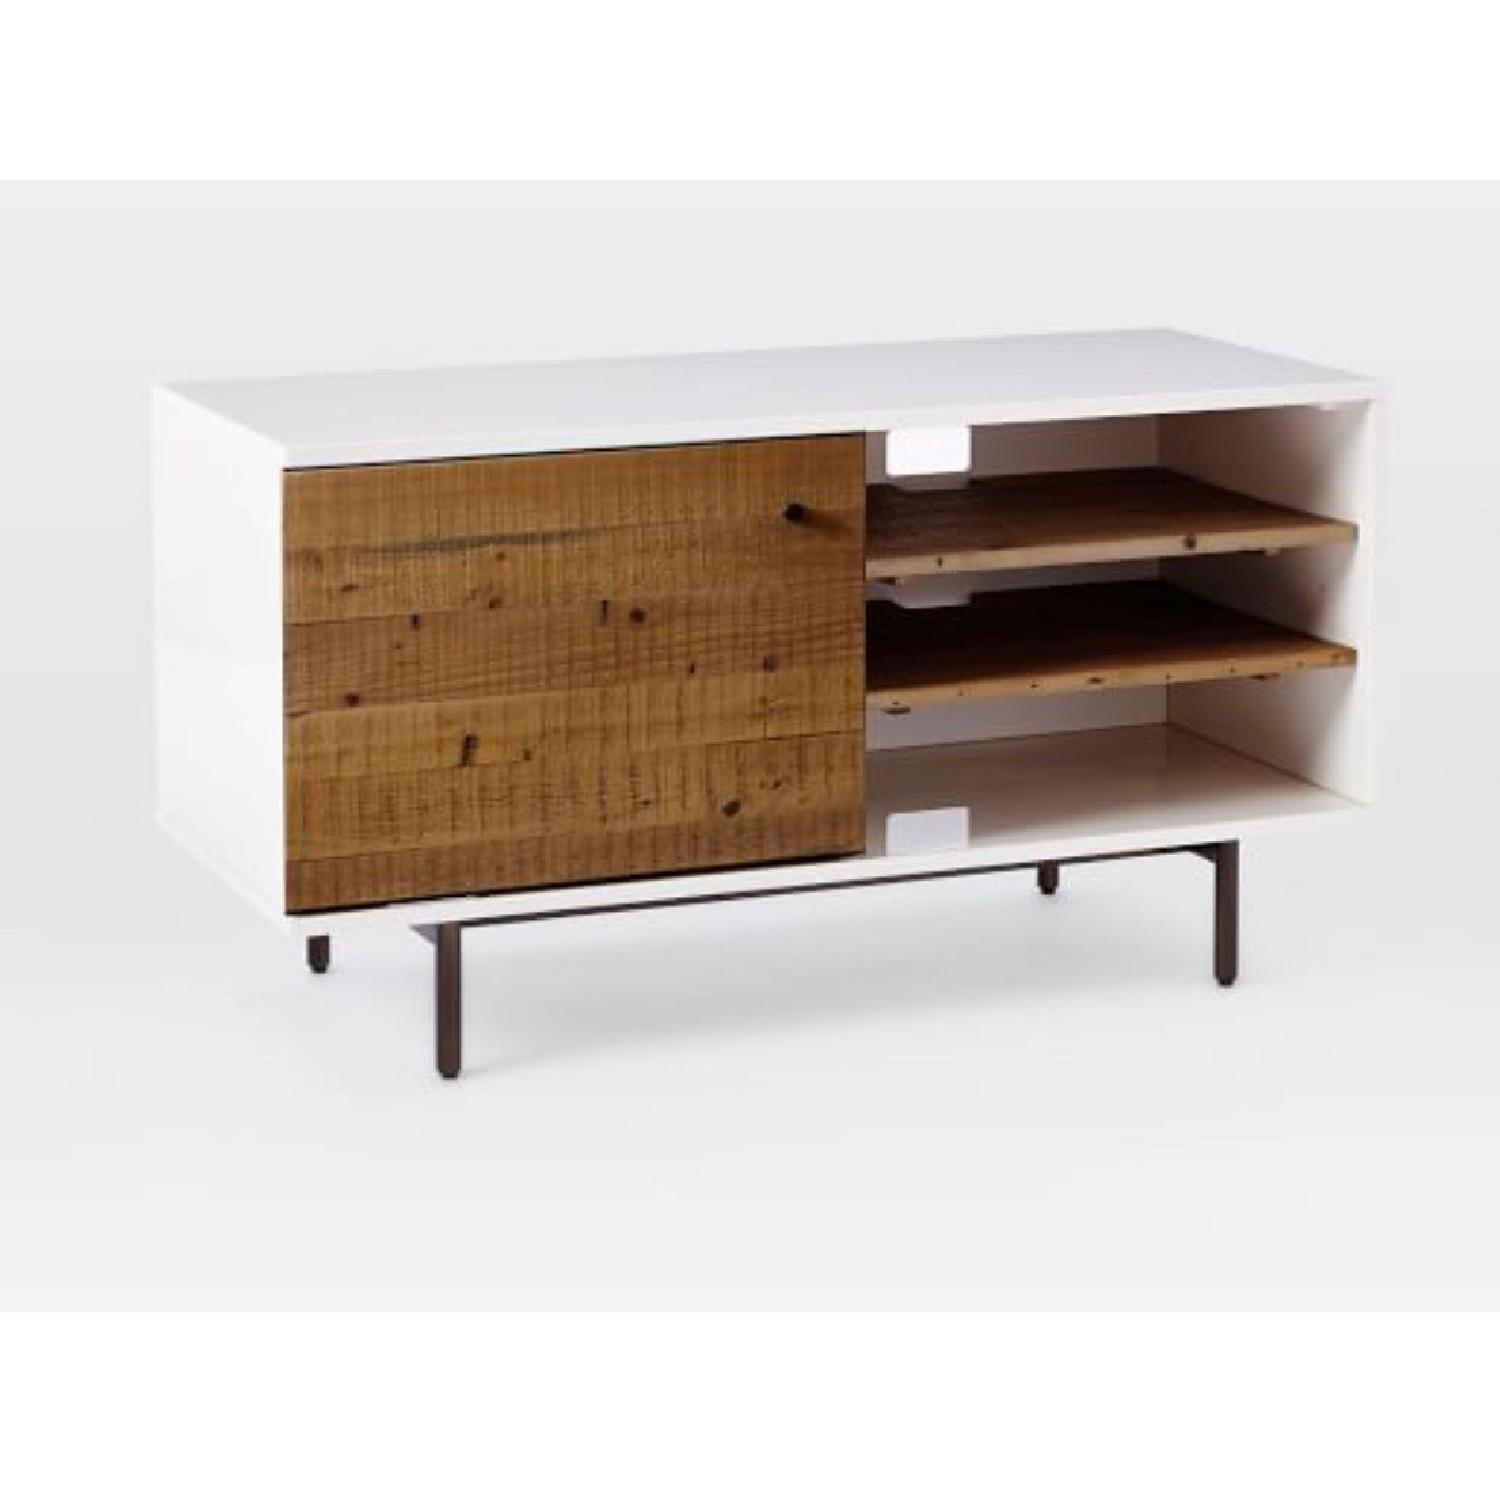 West Elm Reclaimed Wood & Lacquer Media Console - image-1